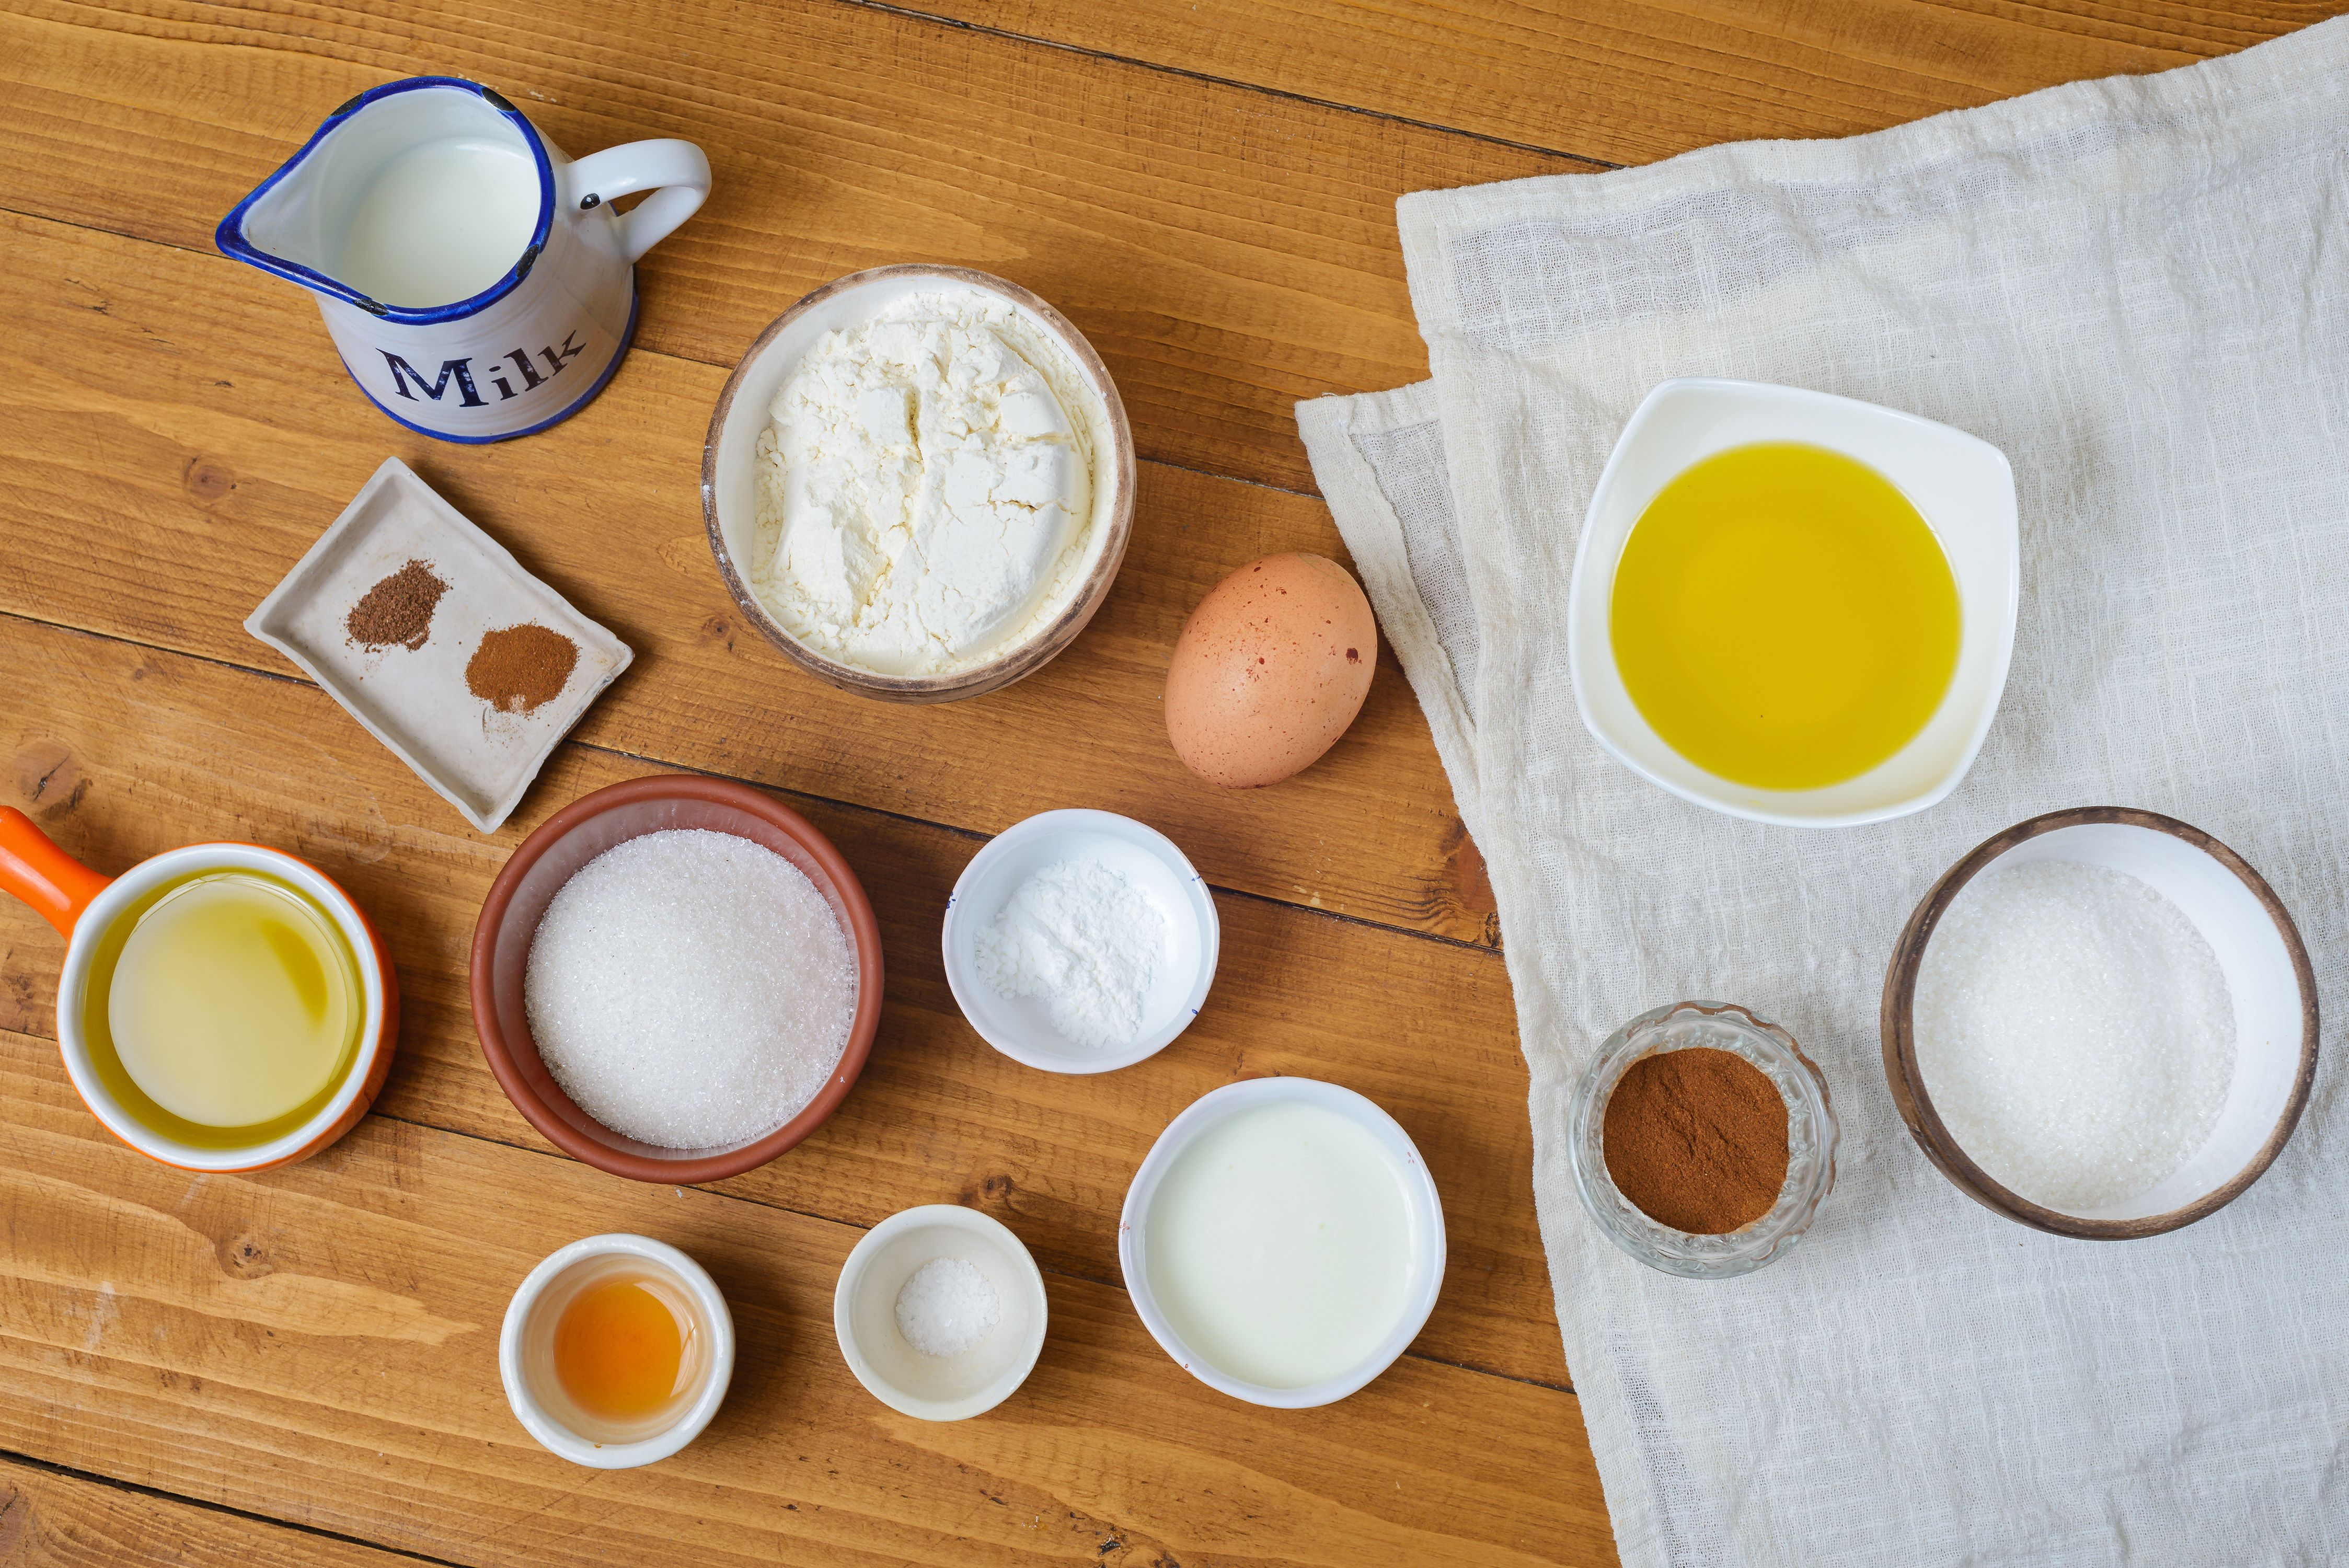 Ingredients for olive oil doughnuts